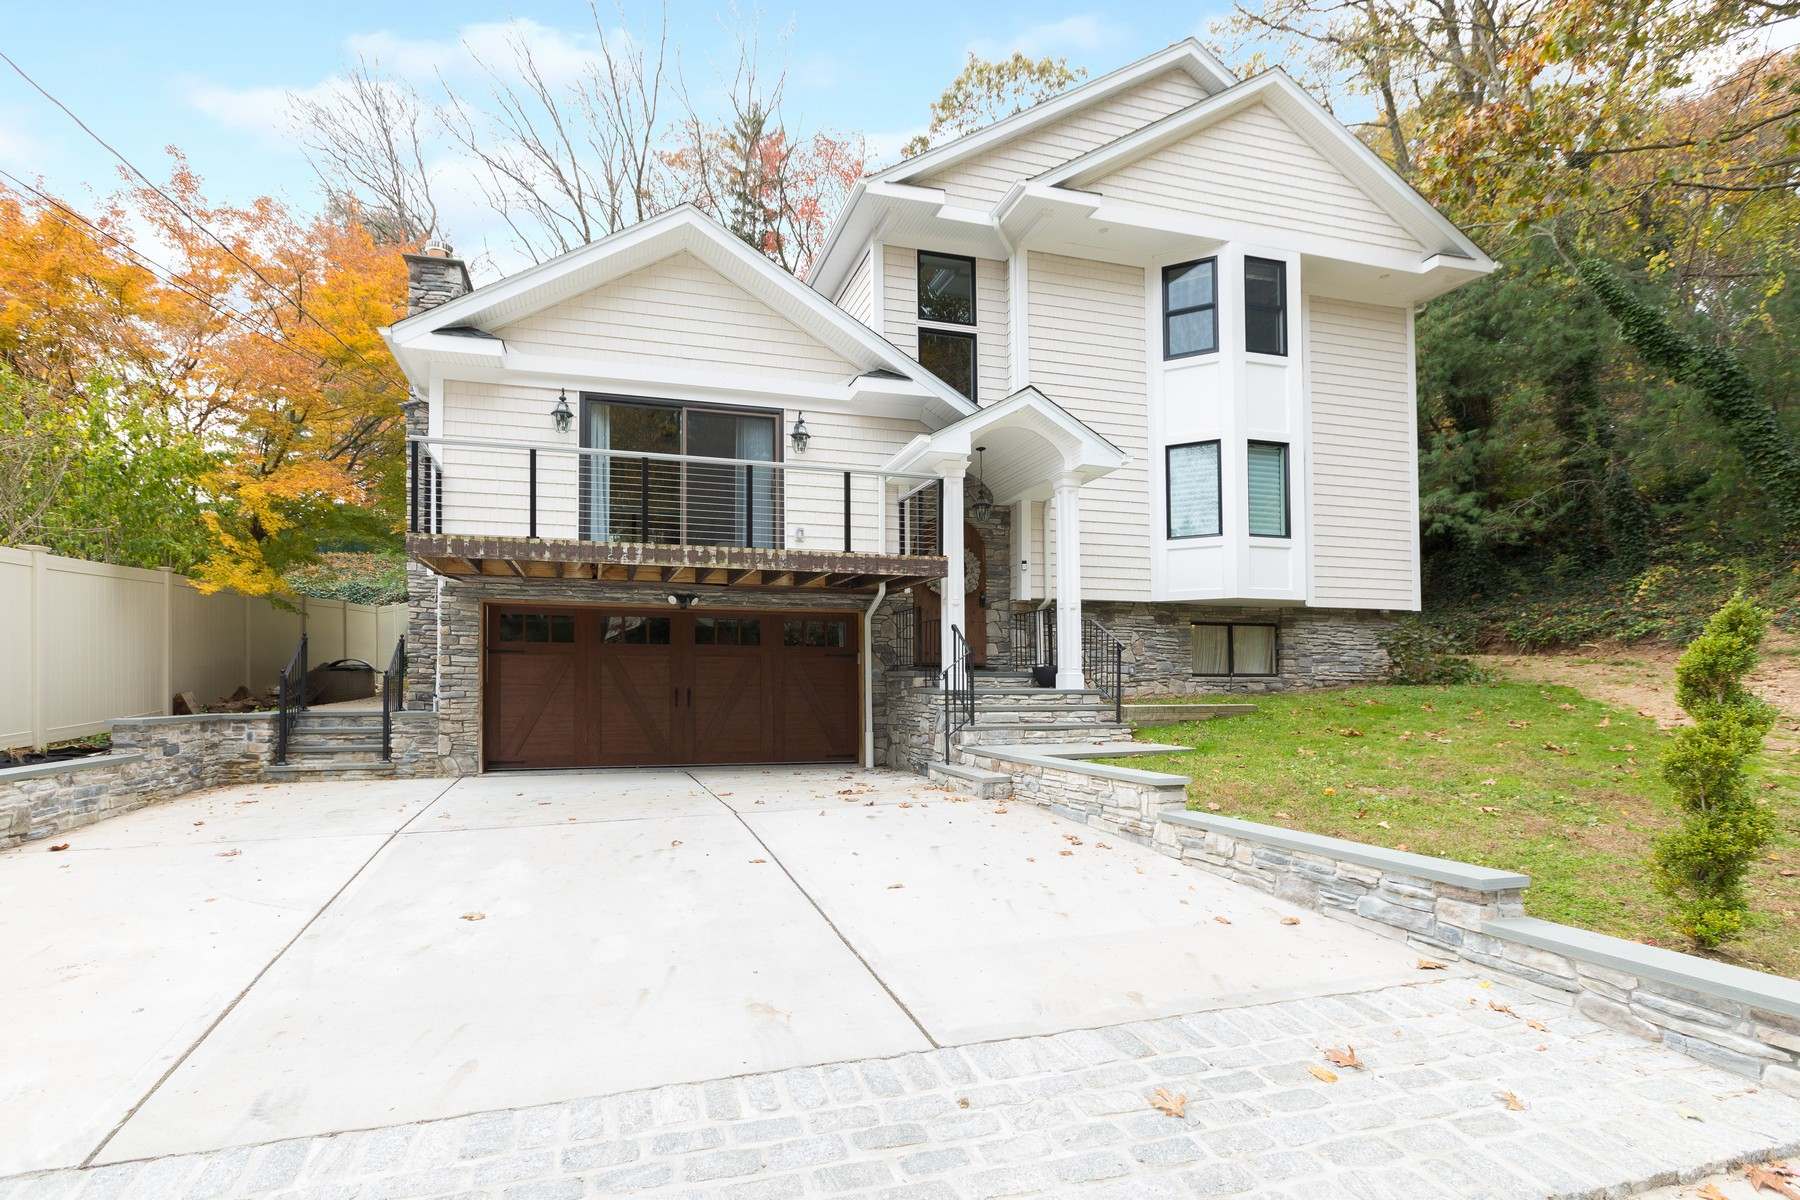 Single Family Homes for Sale at Oyster Bay 37 Ski Lane Oyster Bay, New York 11771 United States